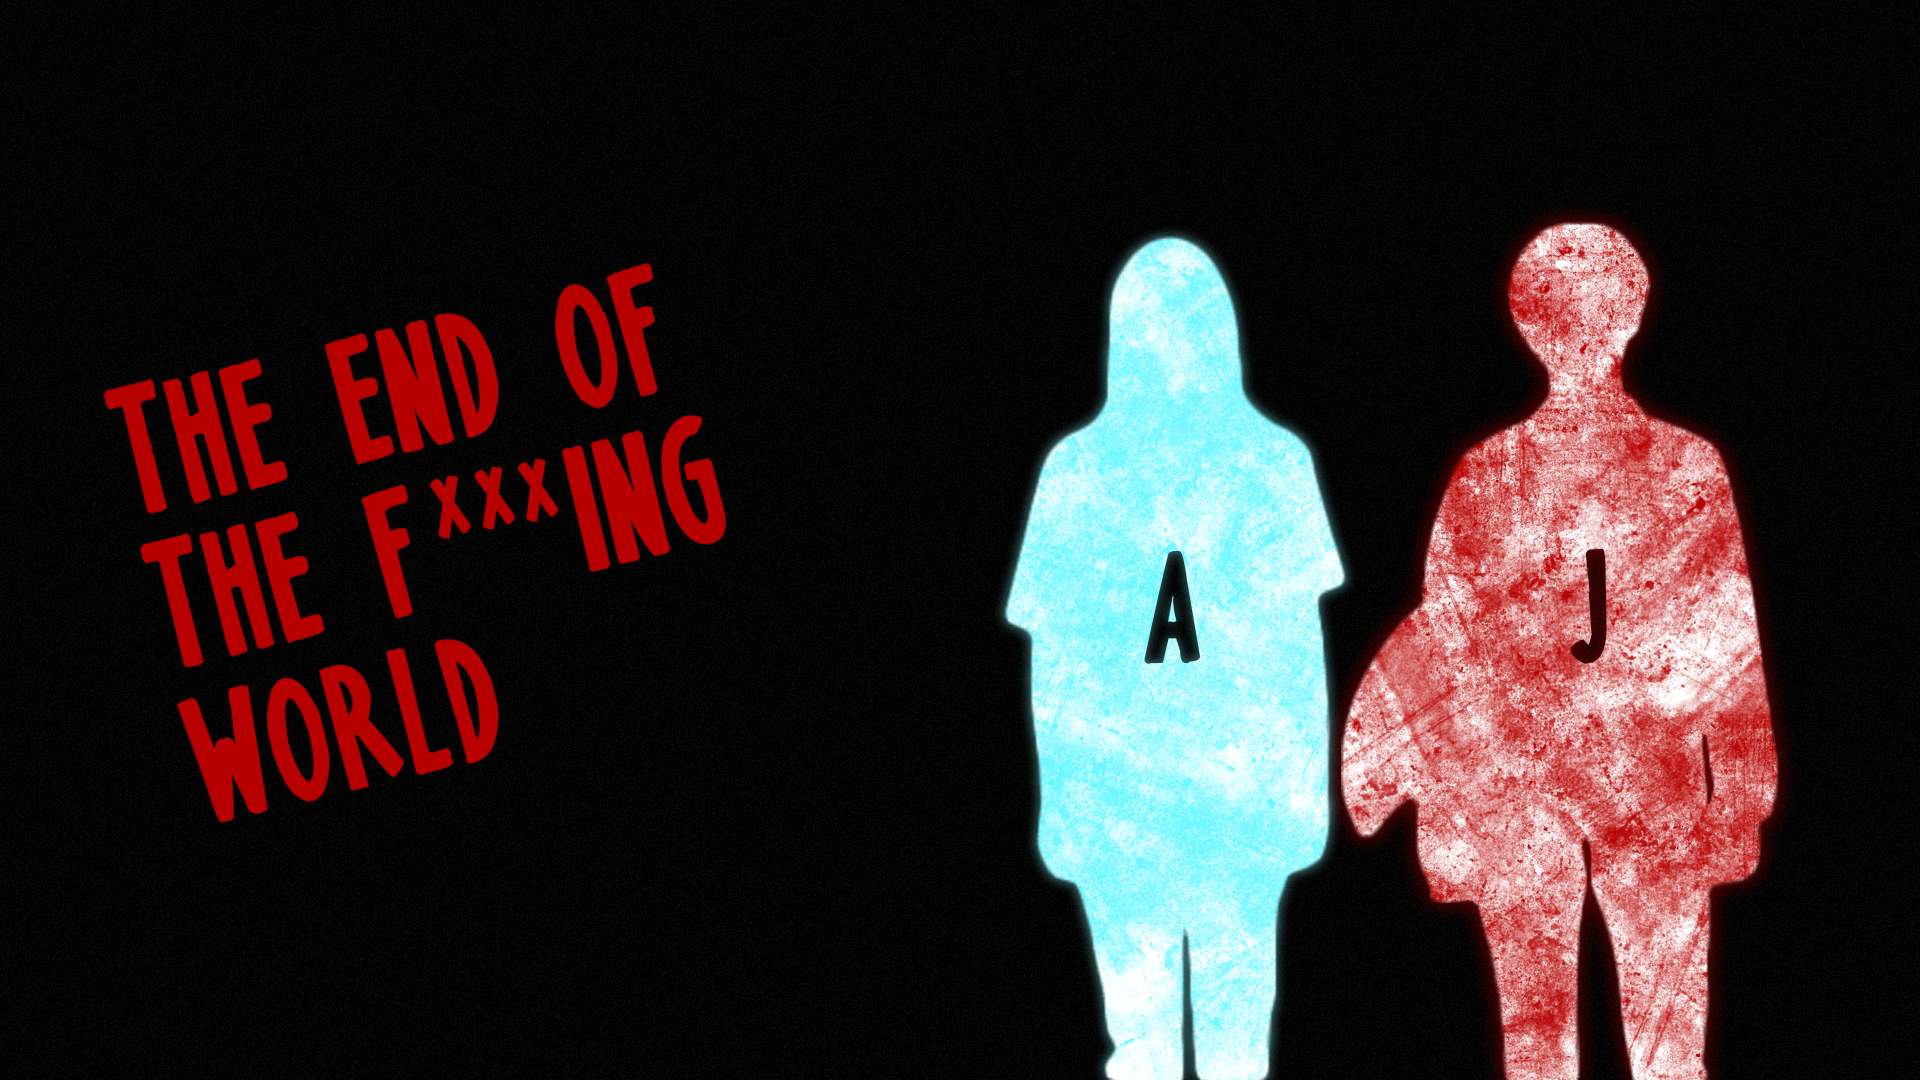 The End Of The F Ing World Wallpaper Hd Wallpaper Background